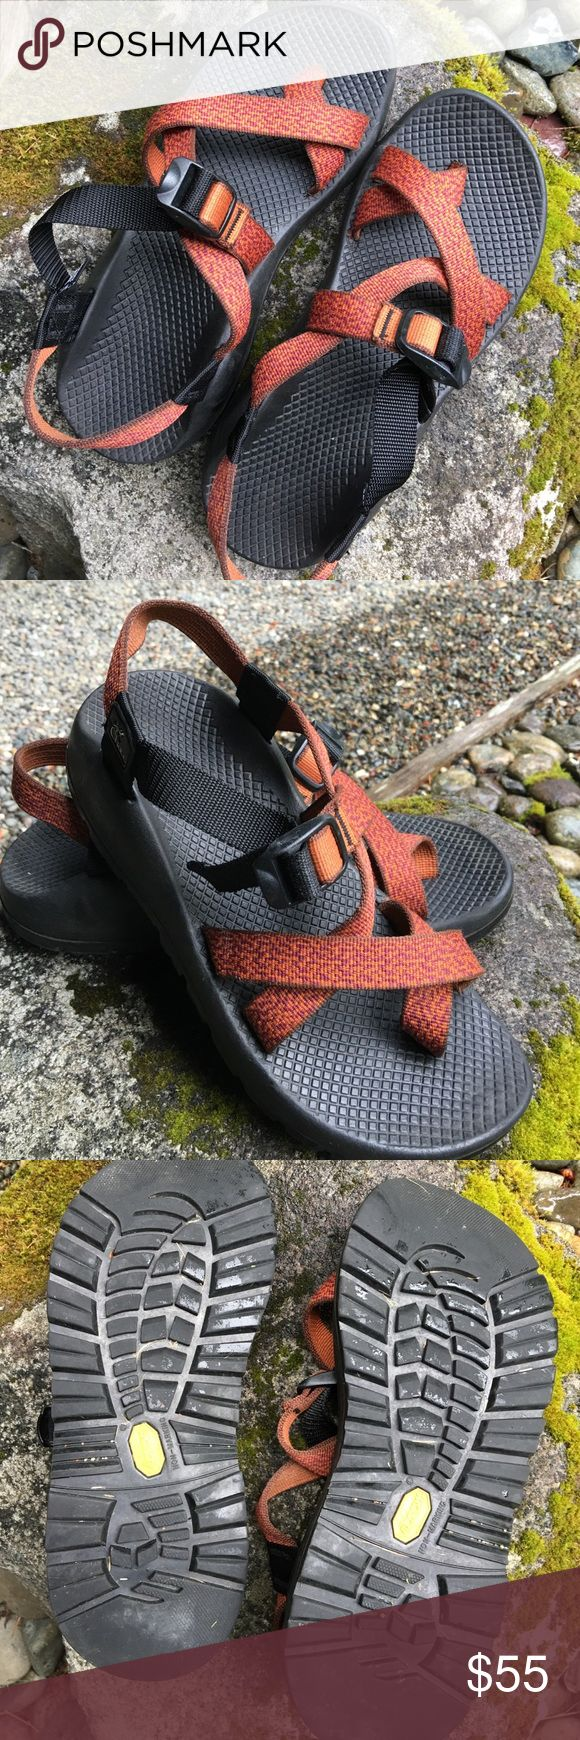 Women's Chaco Sandals Rust/orange classic Chaco sandals. Women's size 9. In excellent condition, not worn much. Chacos Shoes Sandals